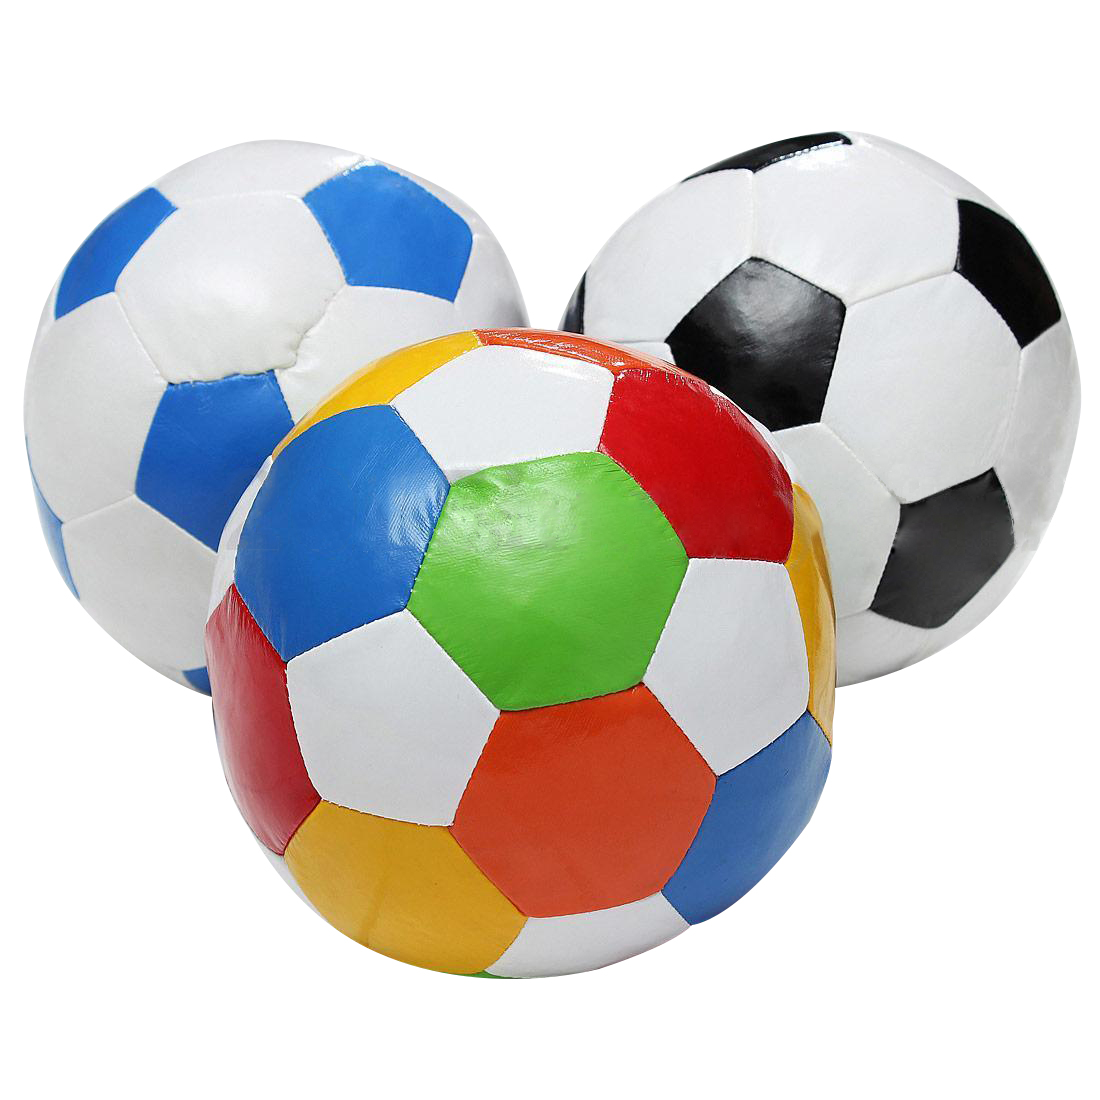 HOT SALE pc 14.4cm Soft Indoor PVC Surface Football Soccer Play Ball Toy ...